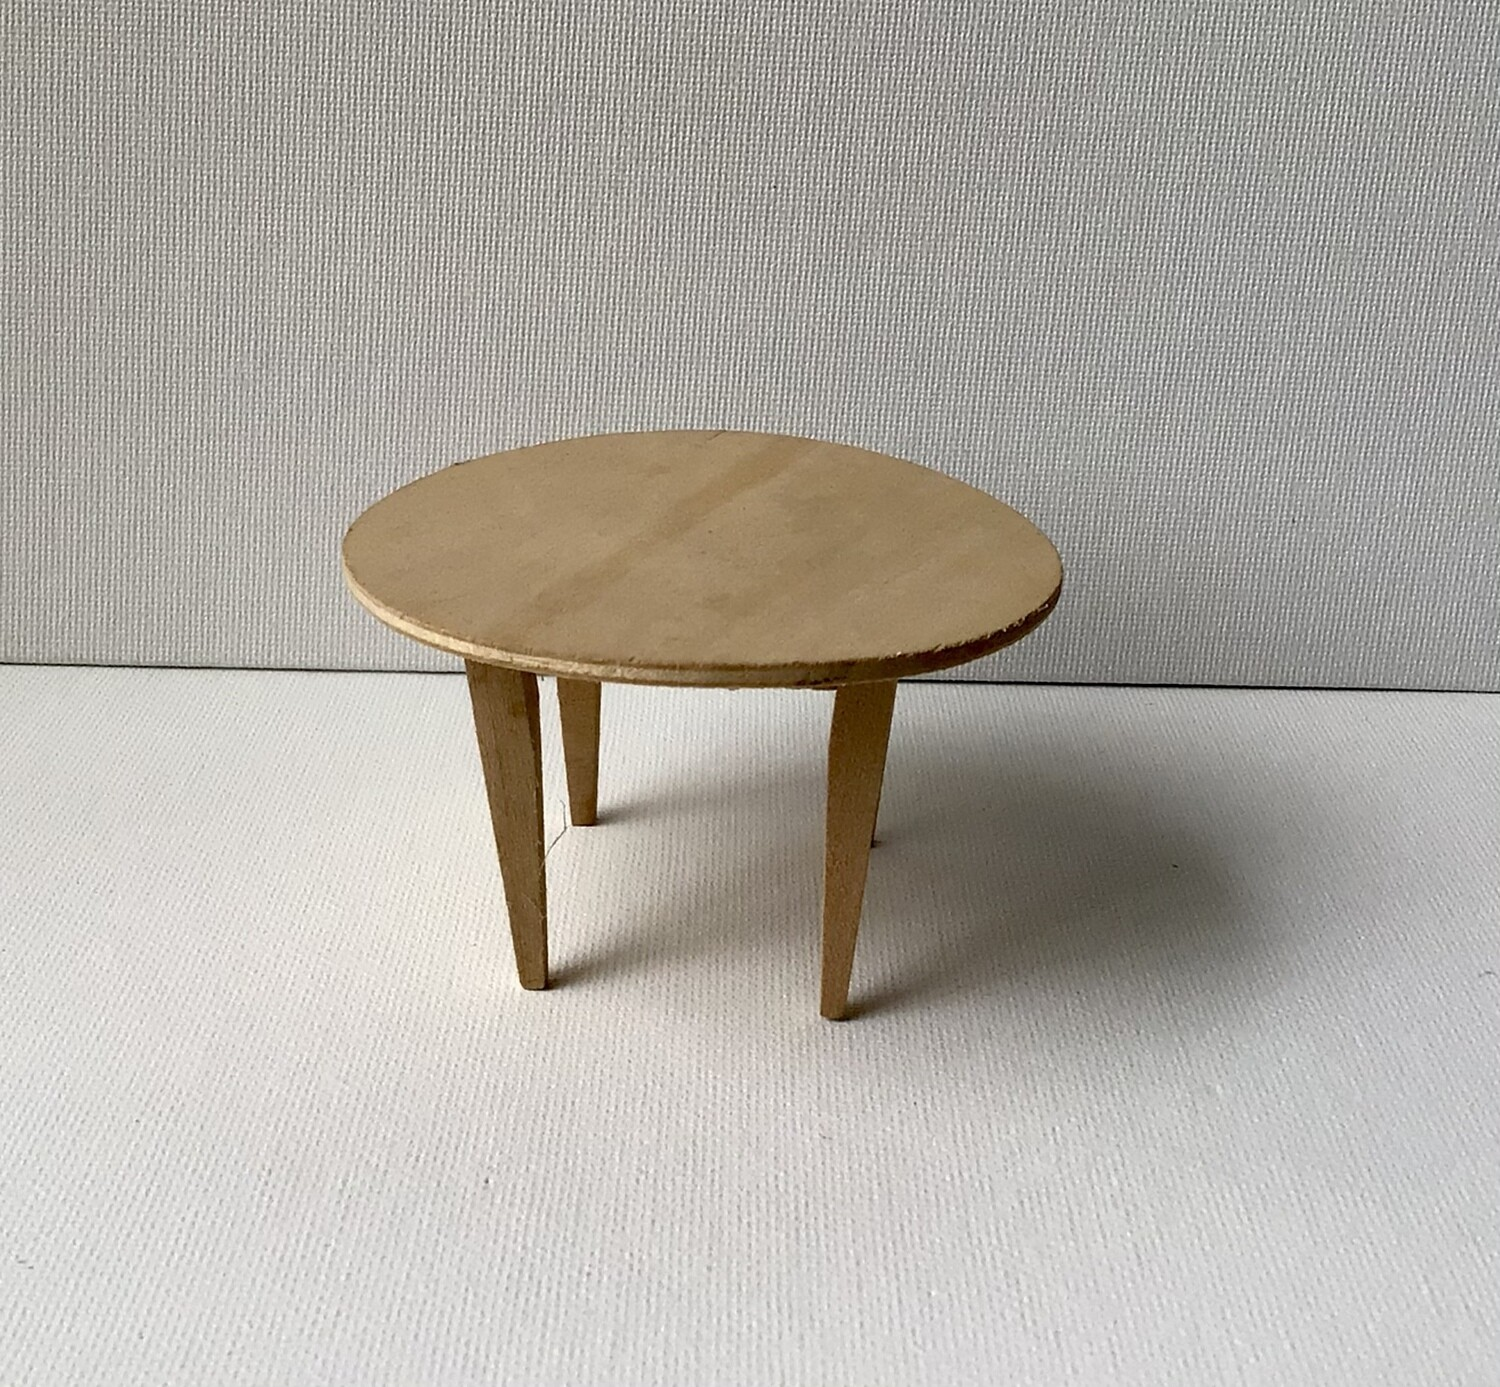 Miniature Furniture: Round Wood Table